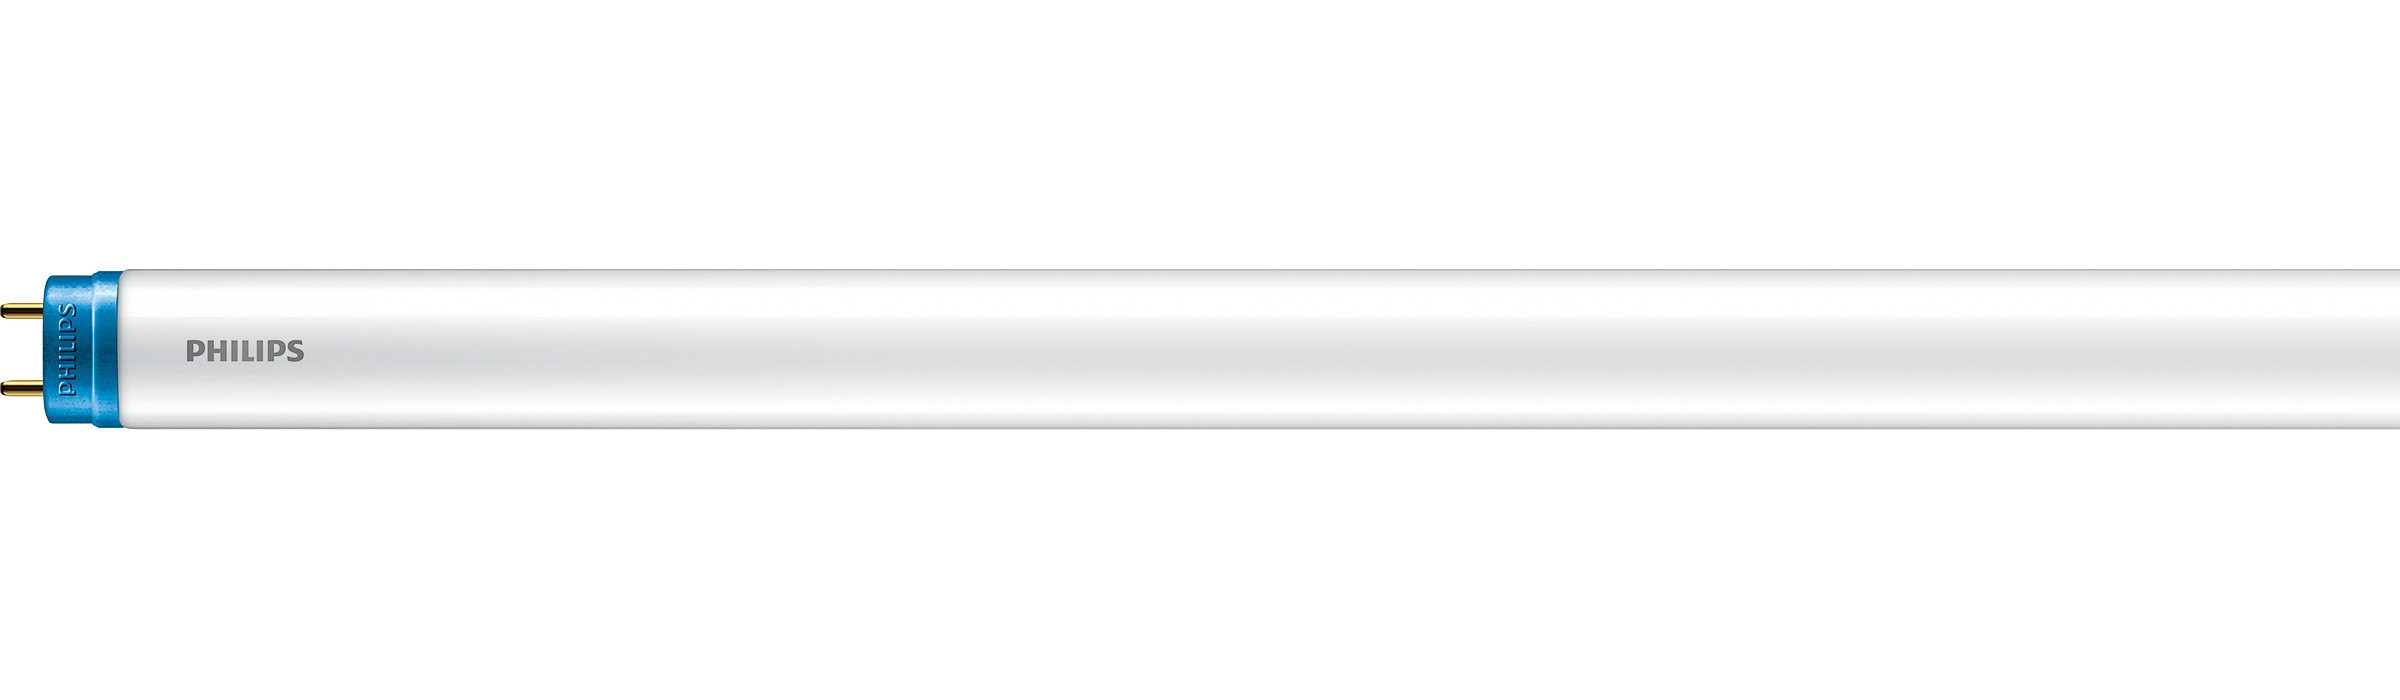 LED Röhre Philips CoreLEDtube 240° - 4000K neutralweiss - 14.5W - 1600 Lumen